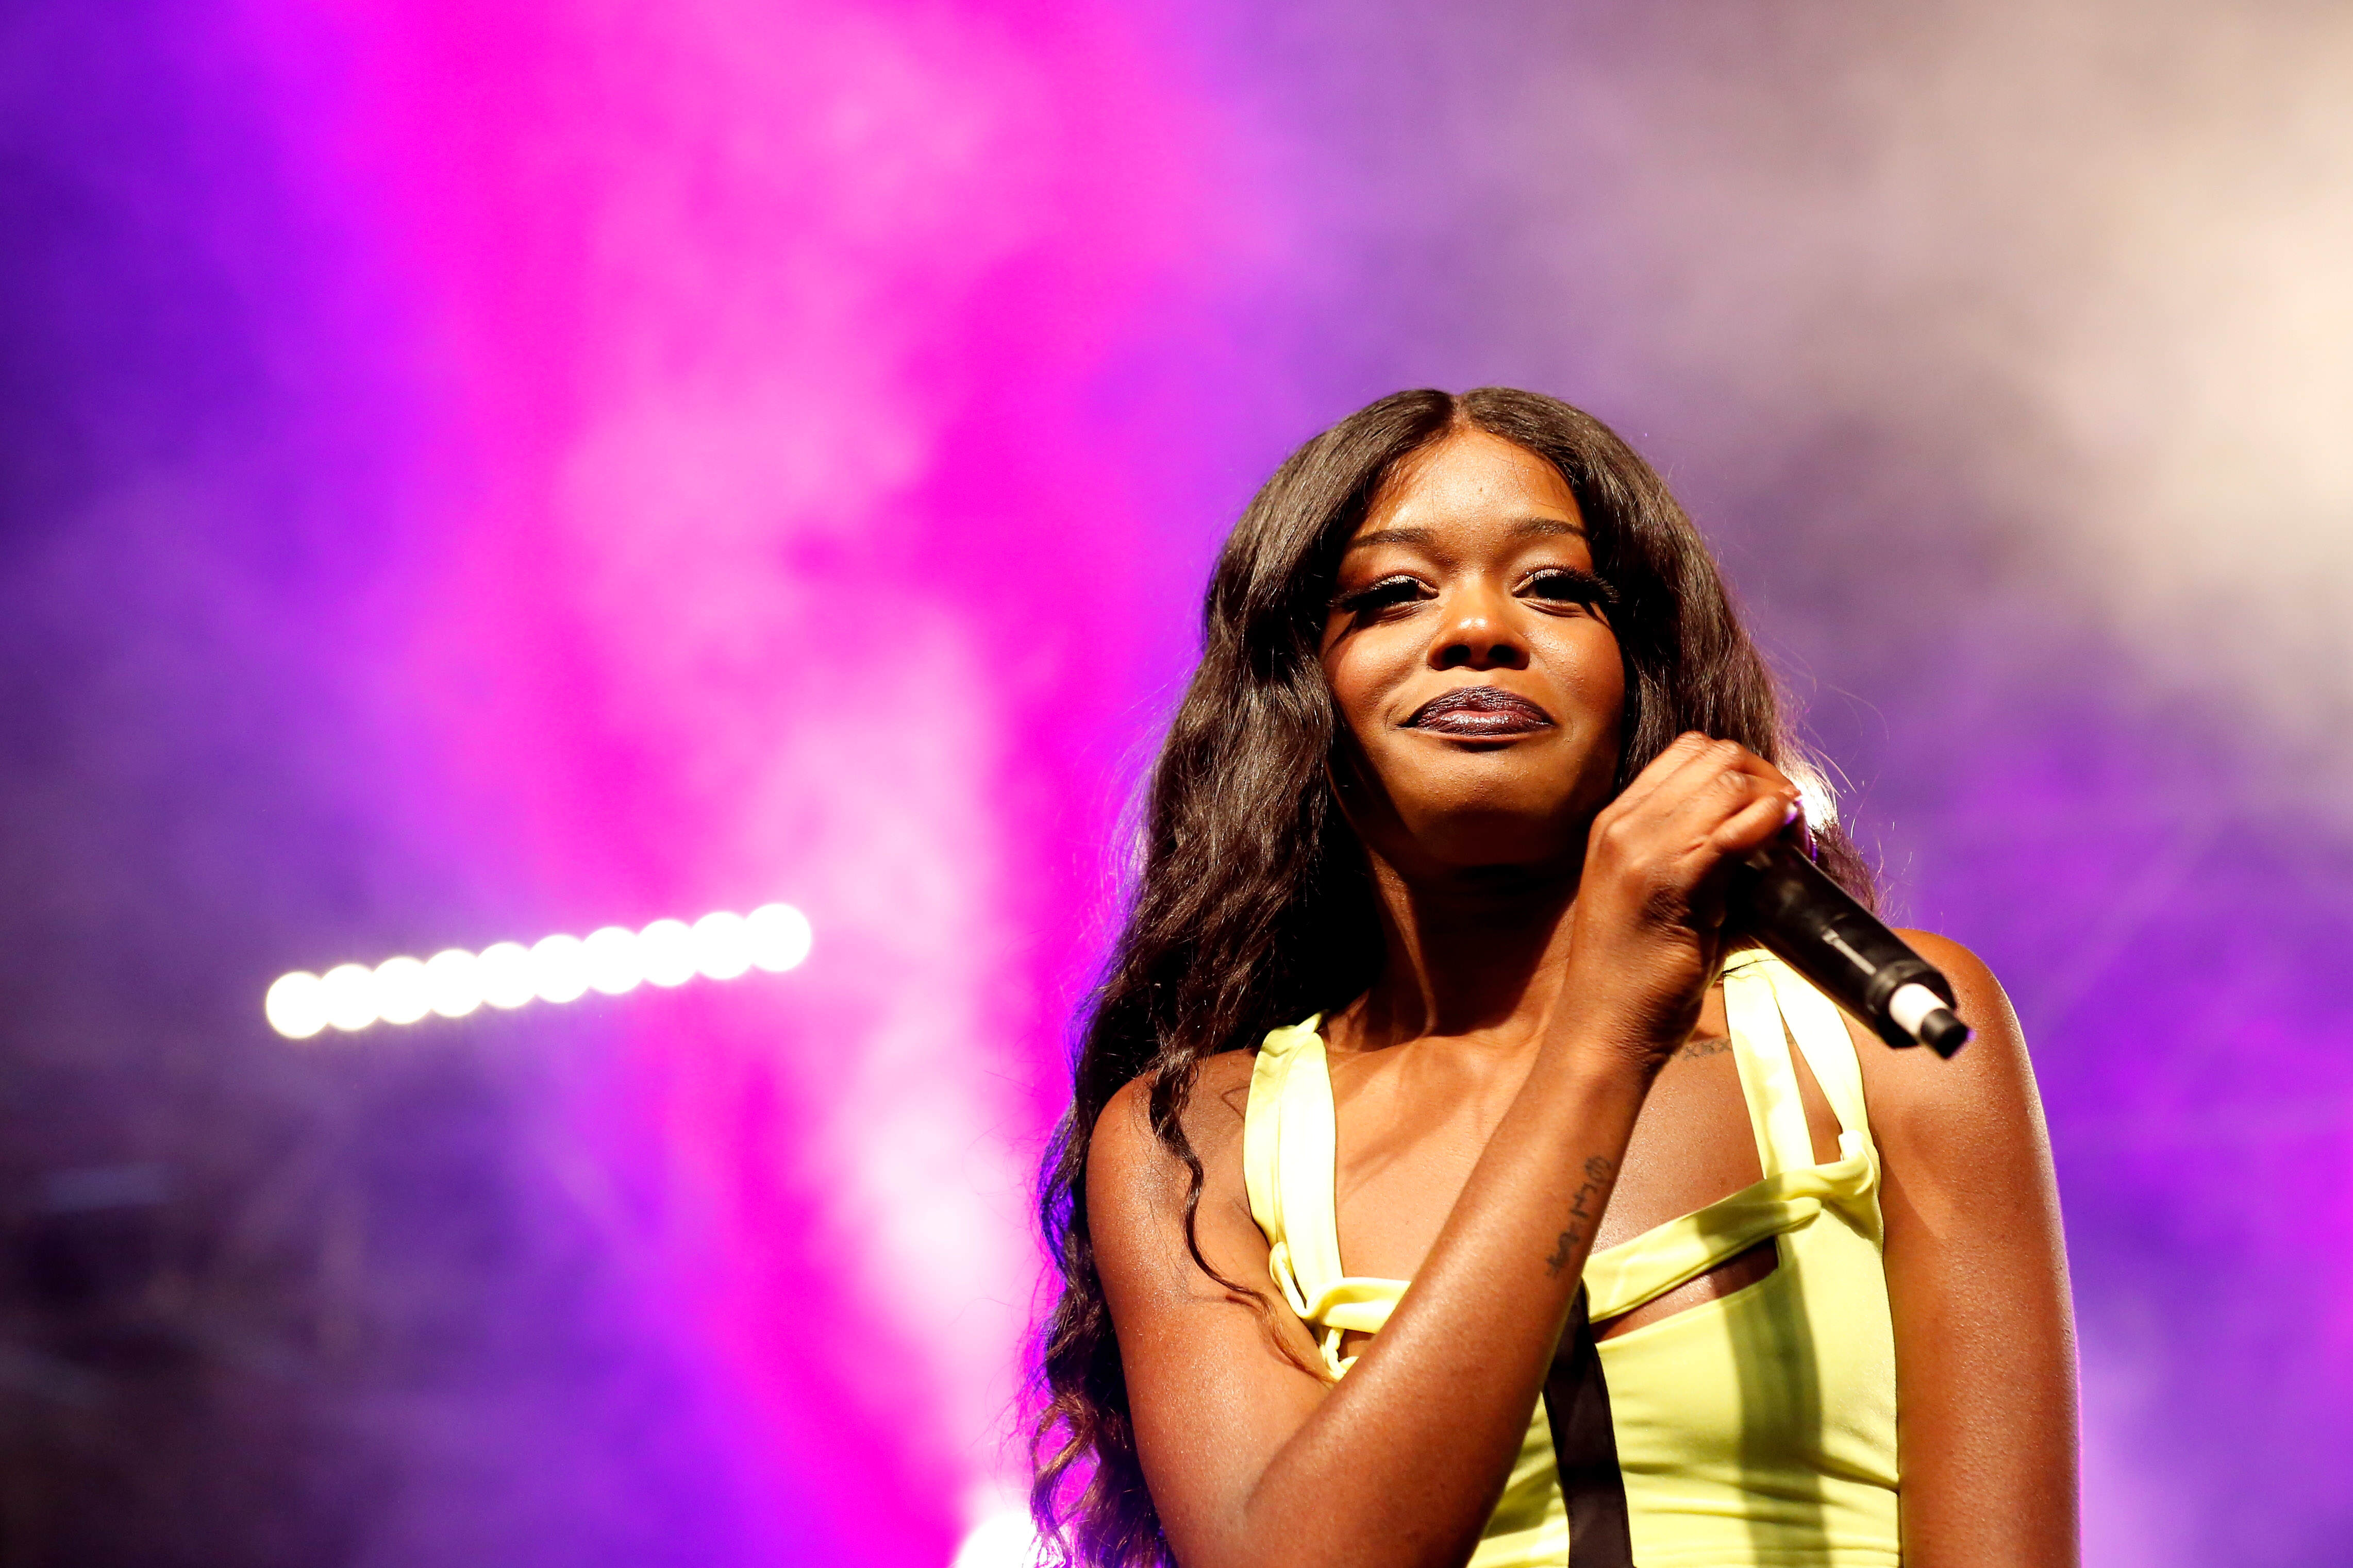 GettyImages 150730546 Azealia Banks Went Way Too Far In Disgusting Sarah Palin Twitter Rant